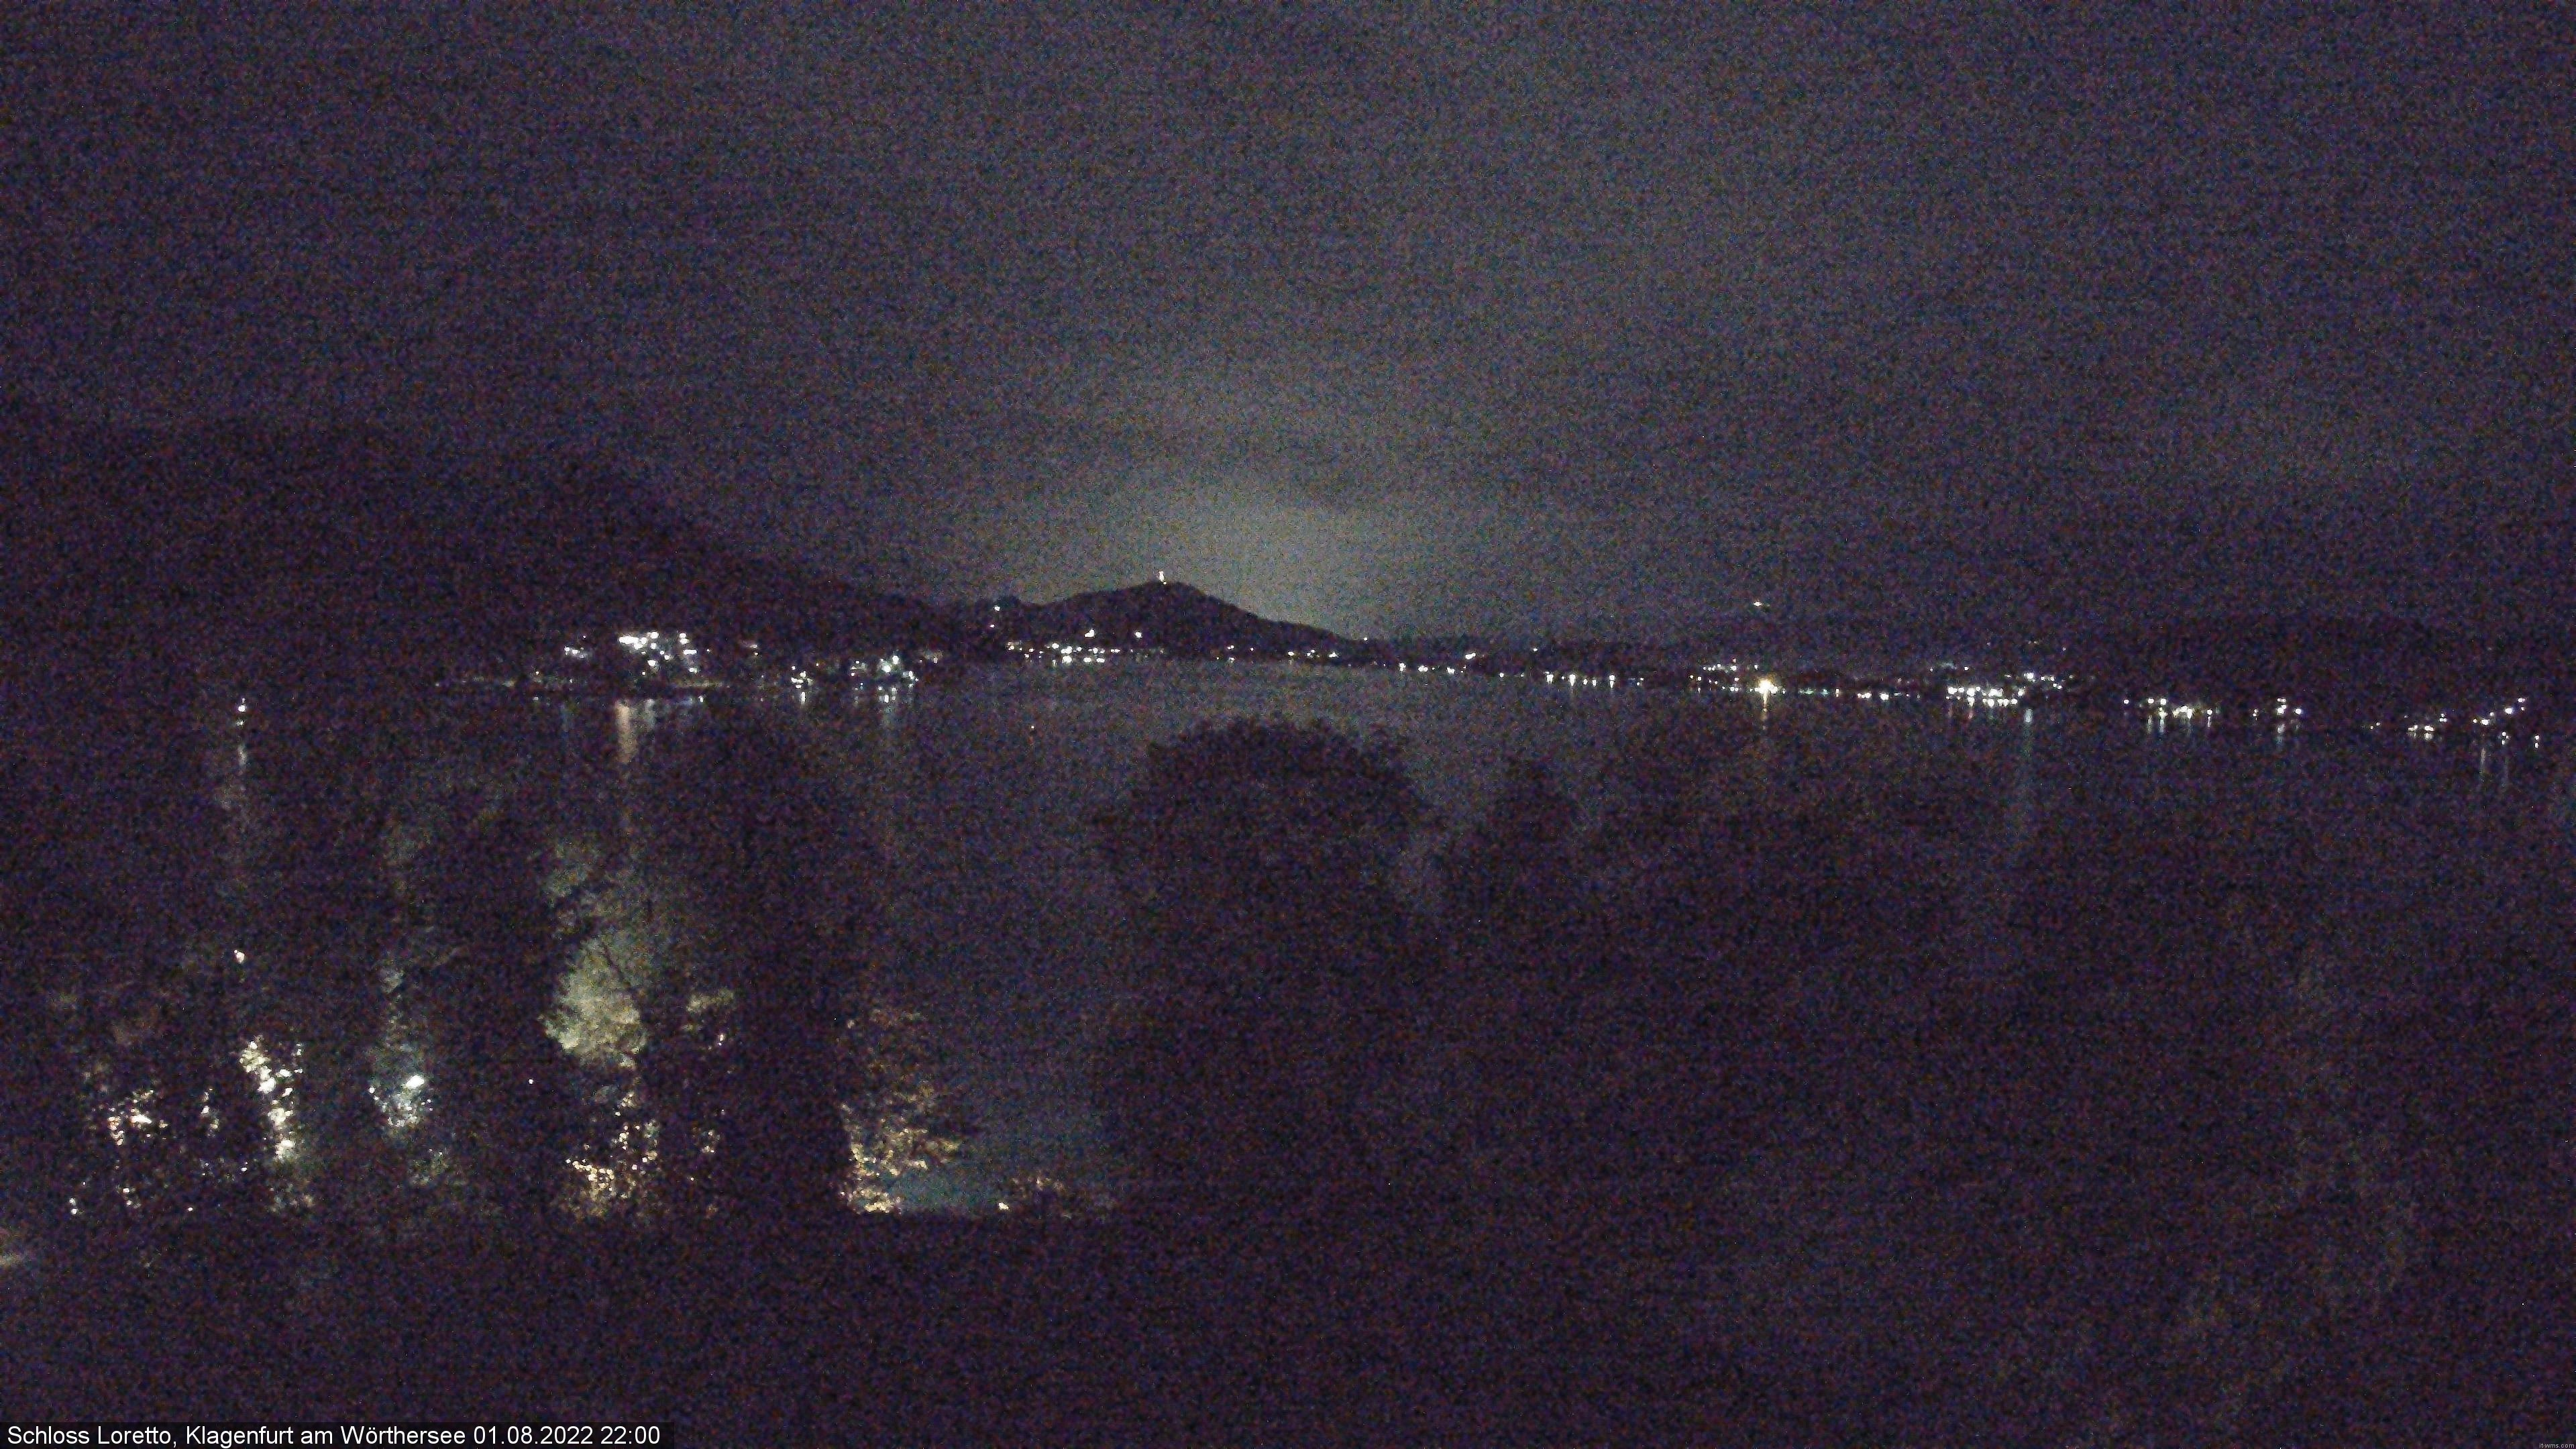 Klagenfurt Webcam